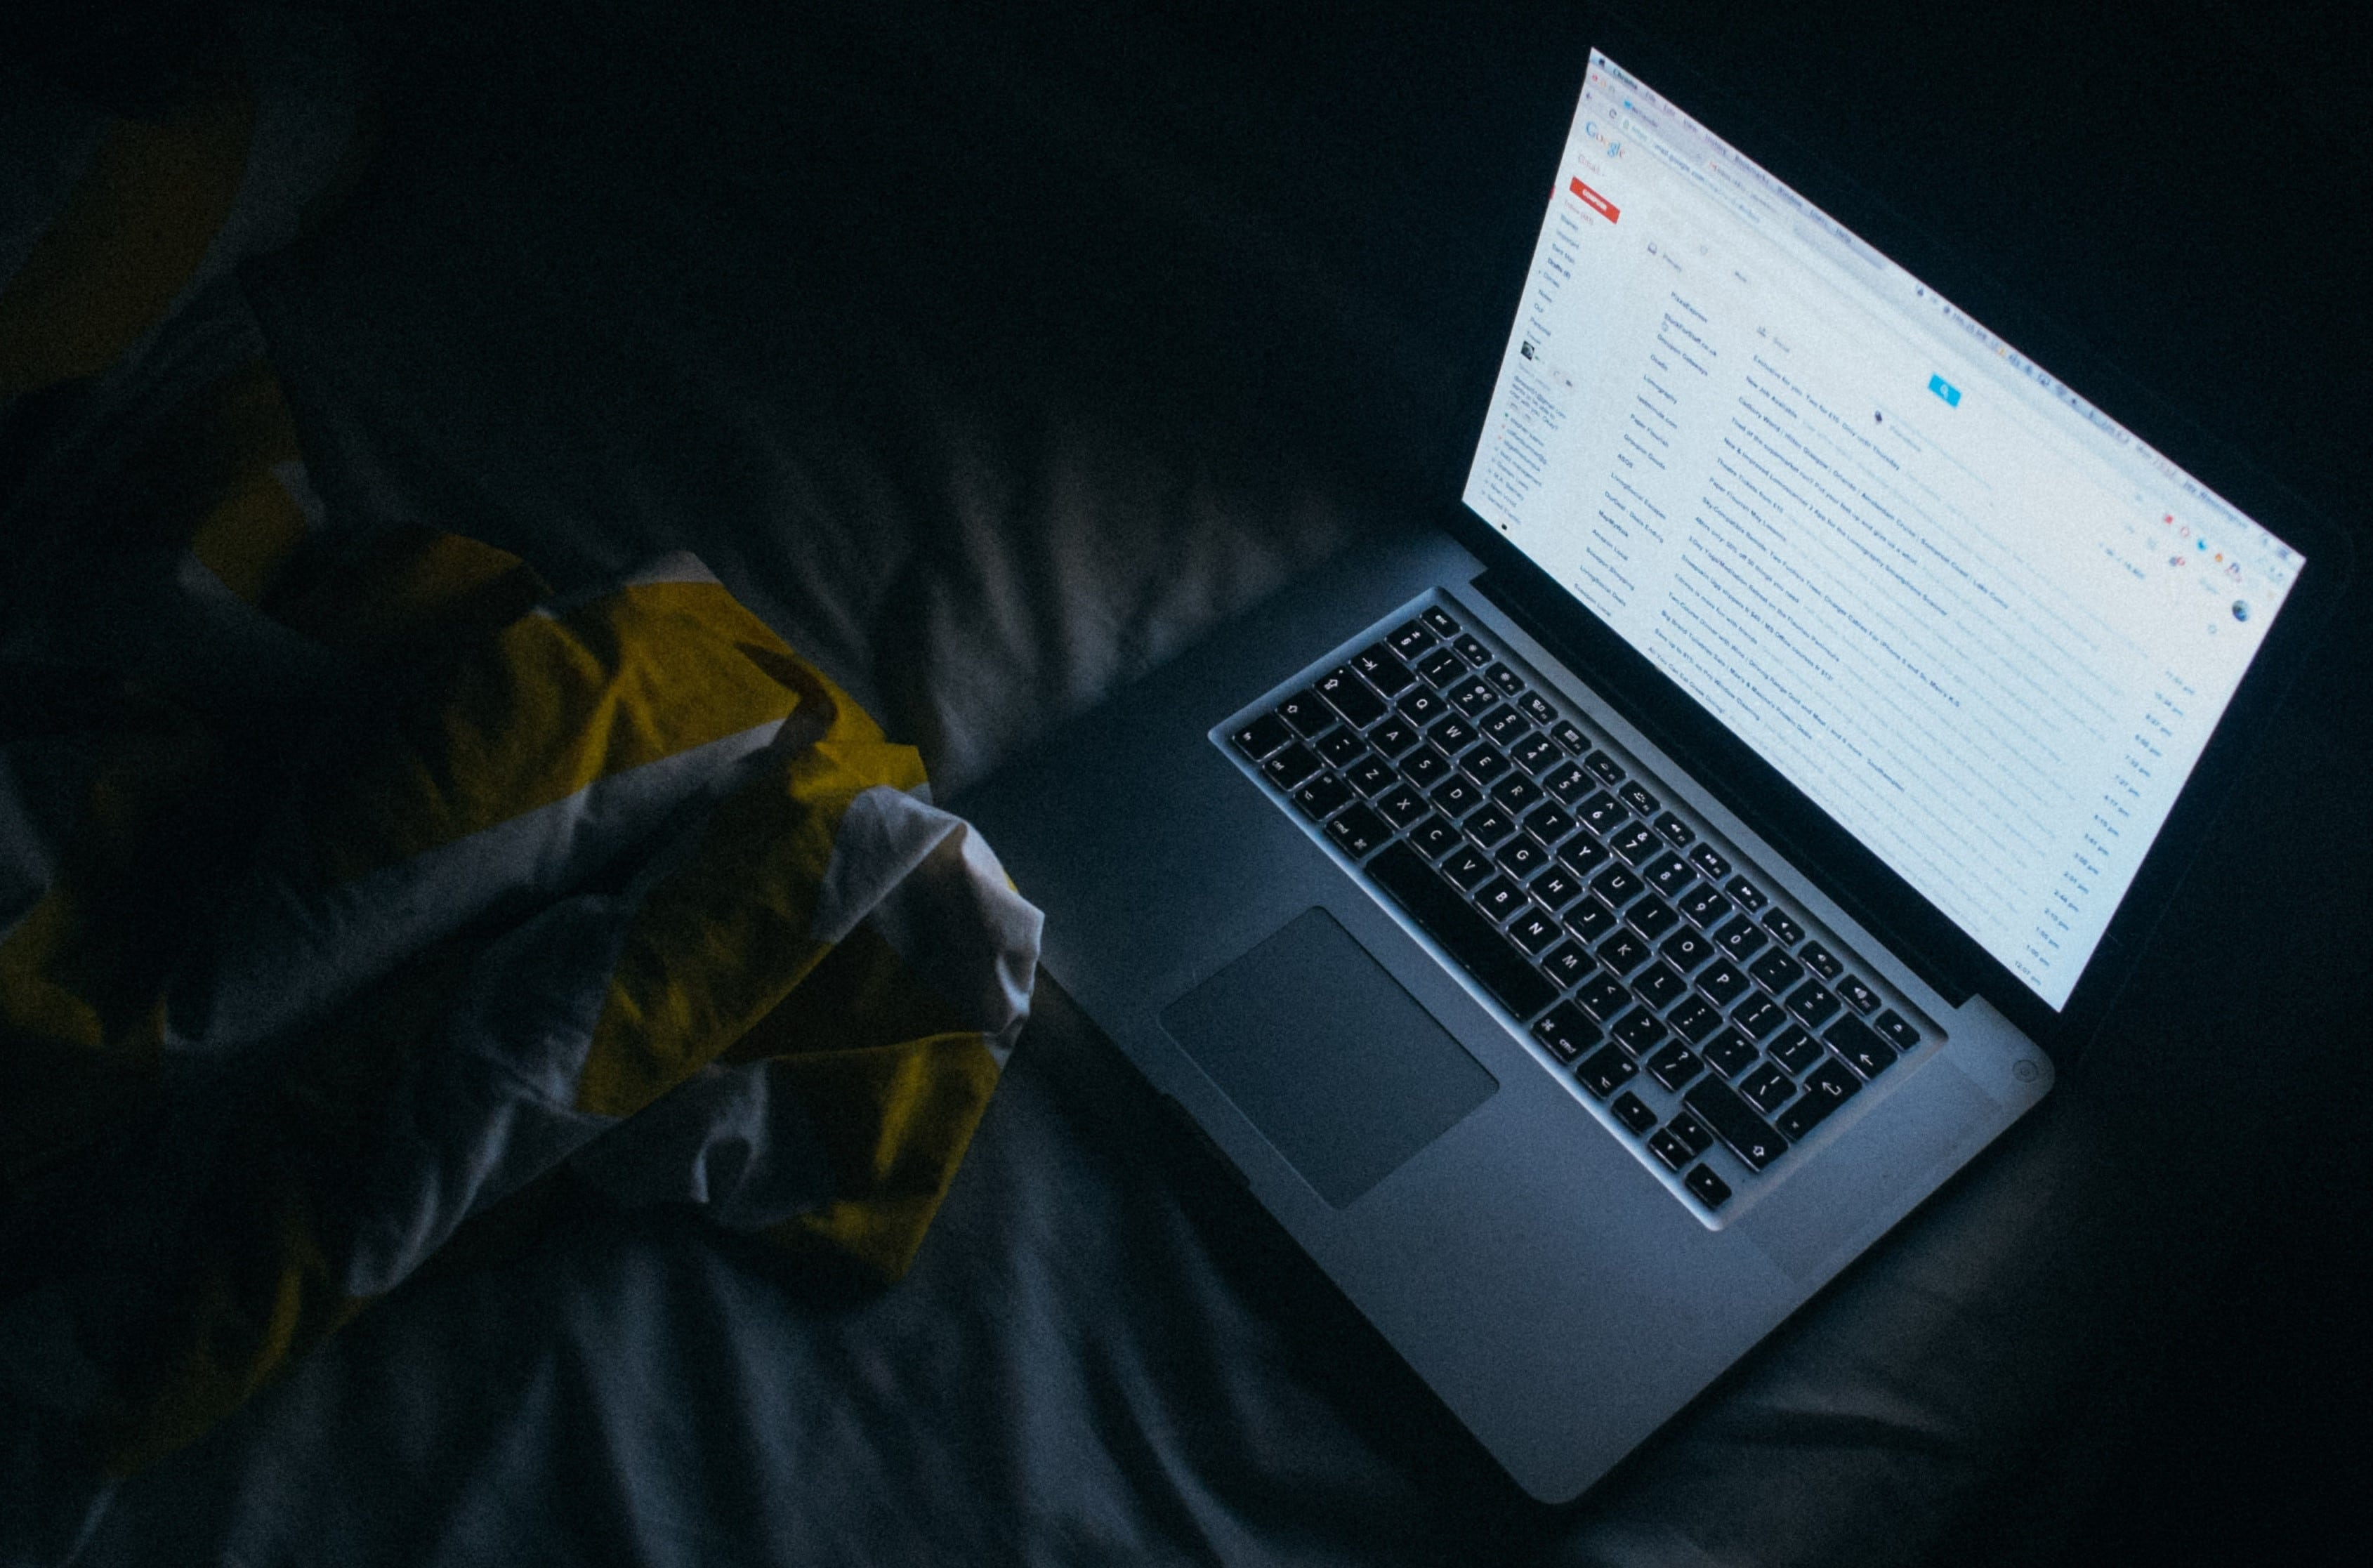 laptop on a bed in the evening emitting harmful bright light that blue light blocking glasses can be used for protection